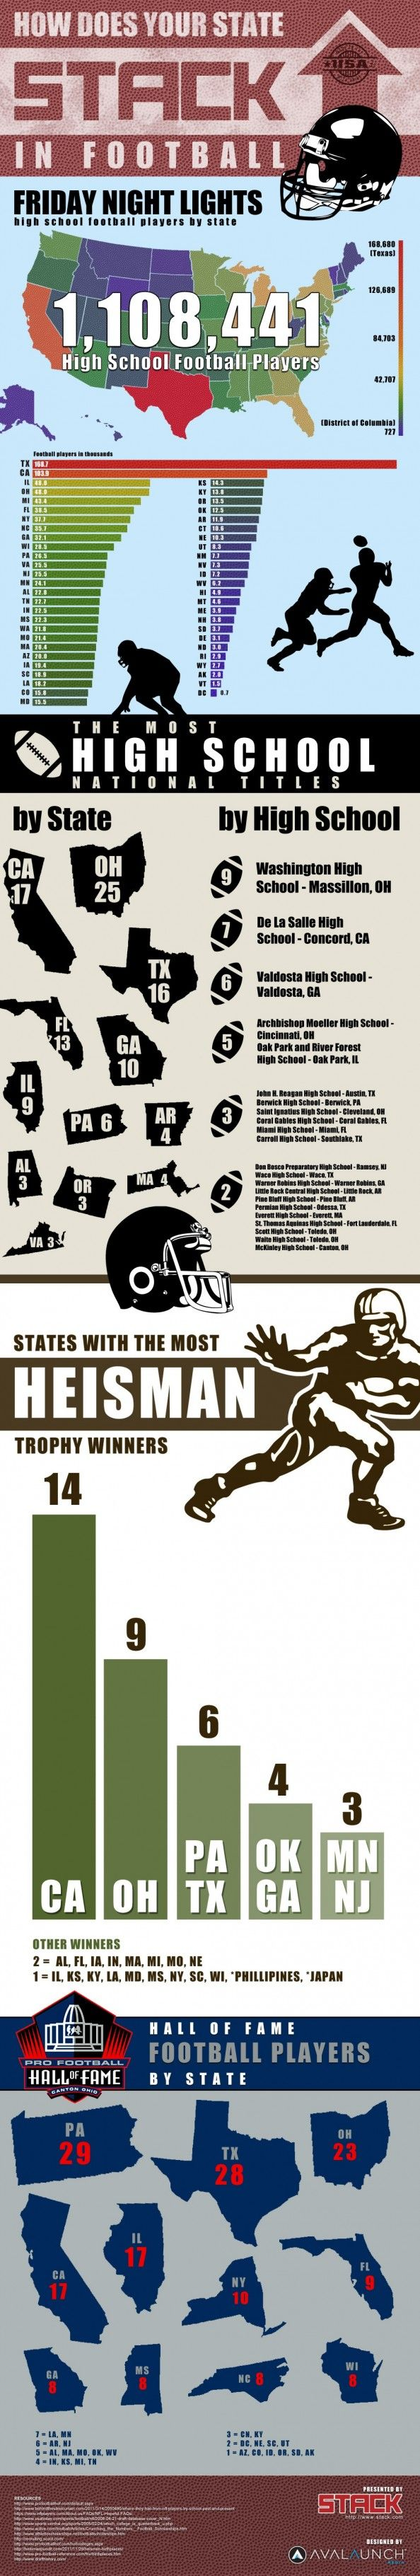 High School Football (US): Best States and records